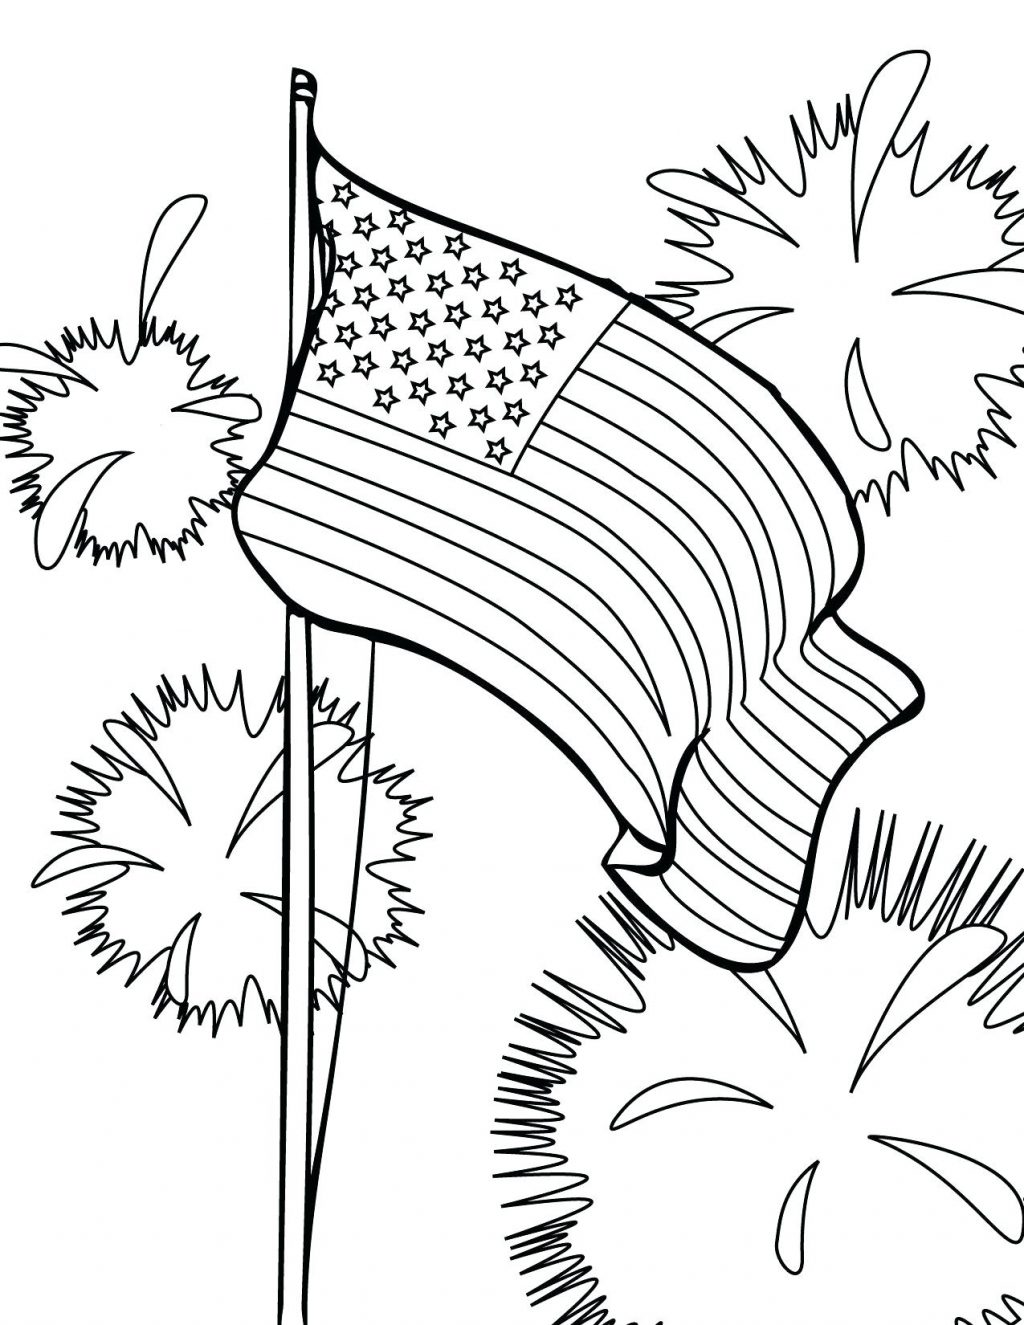 1024x1325 Coloring Pages Flag Coloring Pages Good Page Image Utah State